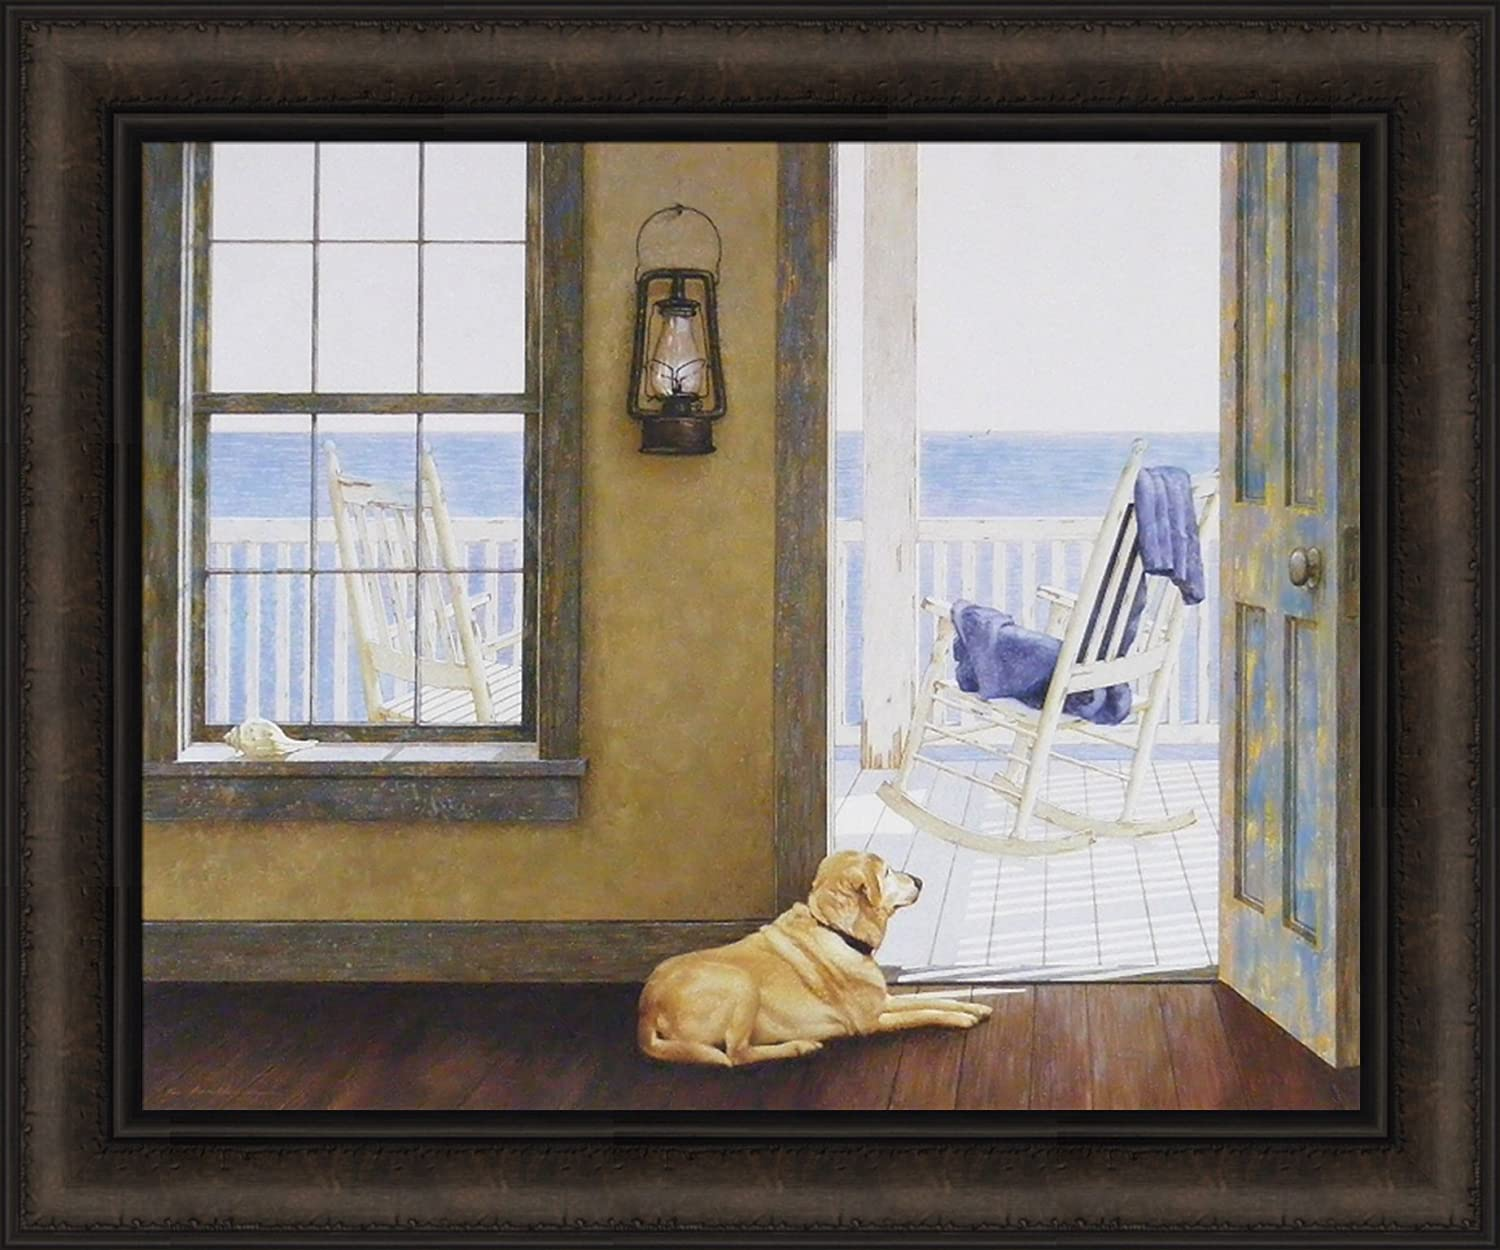 Home Cabin Décor Looking Over The Sea by Zhen-Huan Lu 20x24 Yellow Lab Dog Rocking Chair Ocean Rustic Doorway Porch Framed Art Print Picture